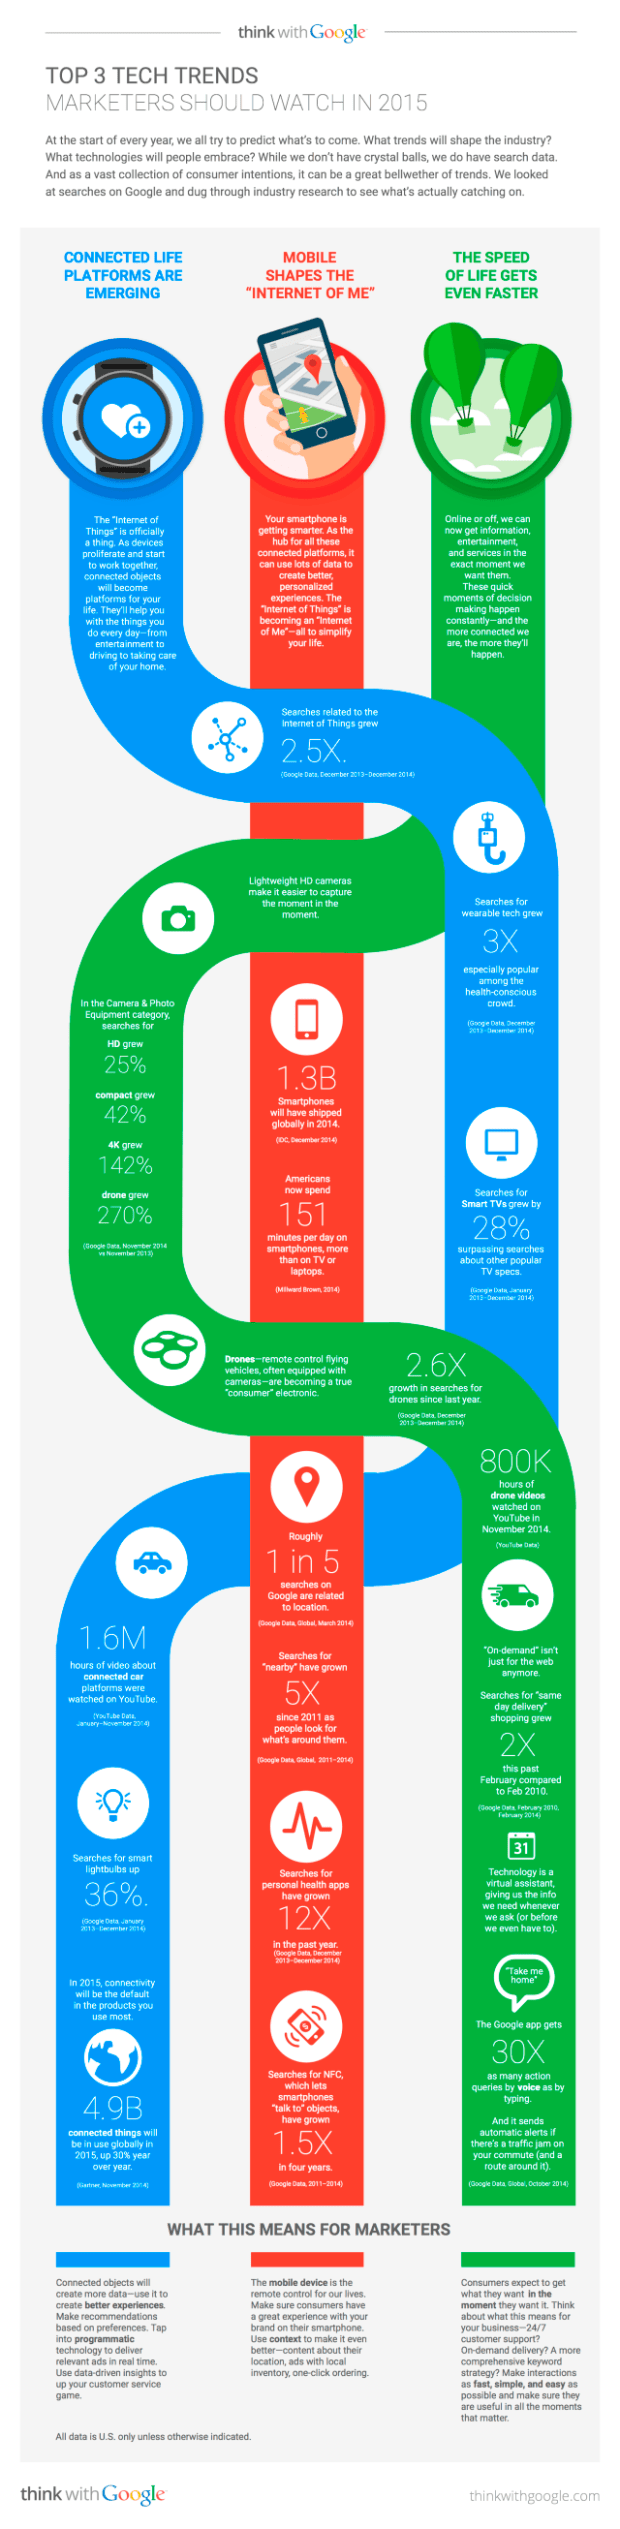 top-3-tech-trends-marketers-should-watch-in-2015_infographics-640x2611